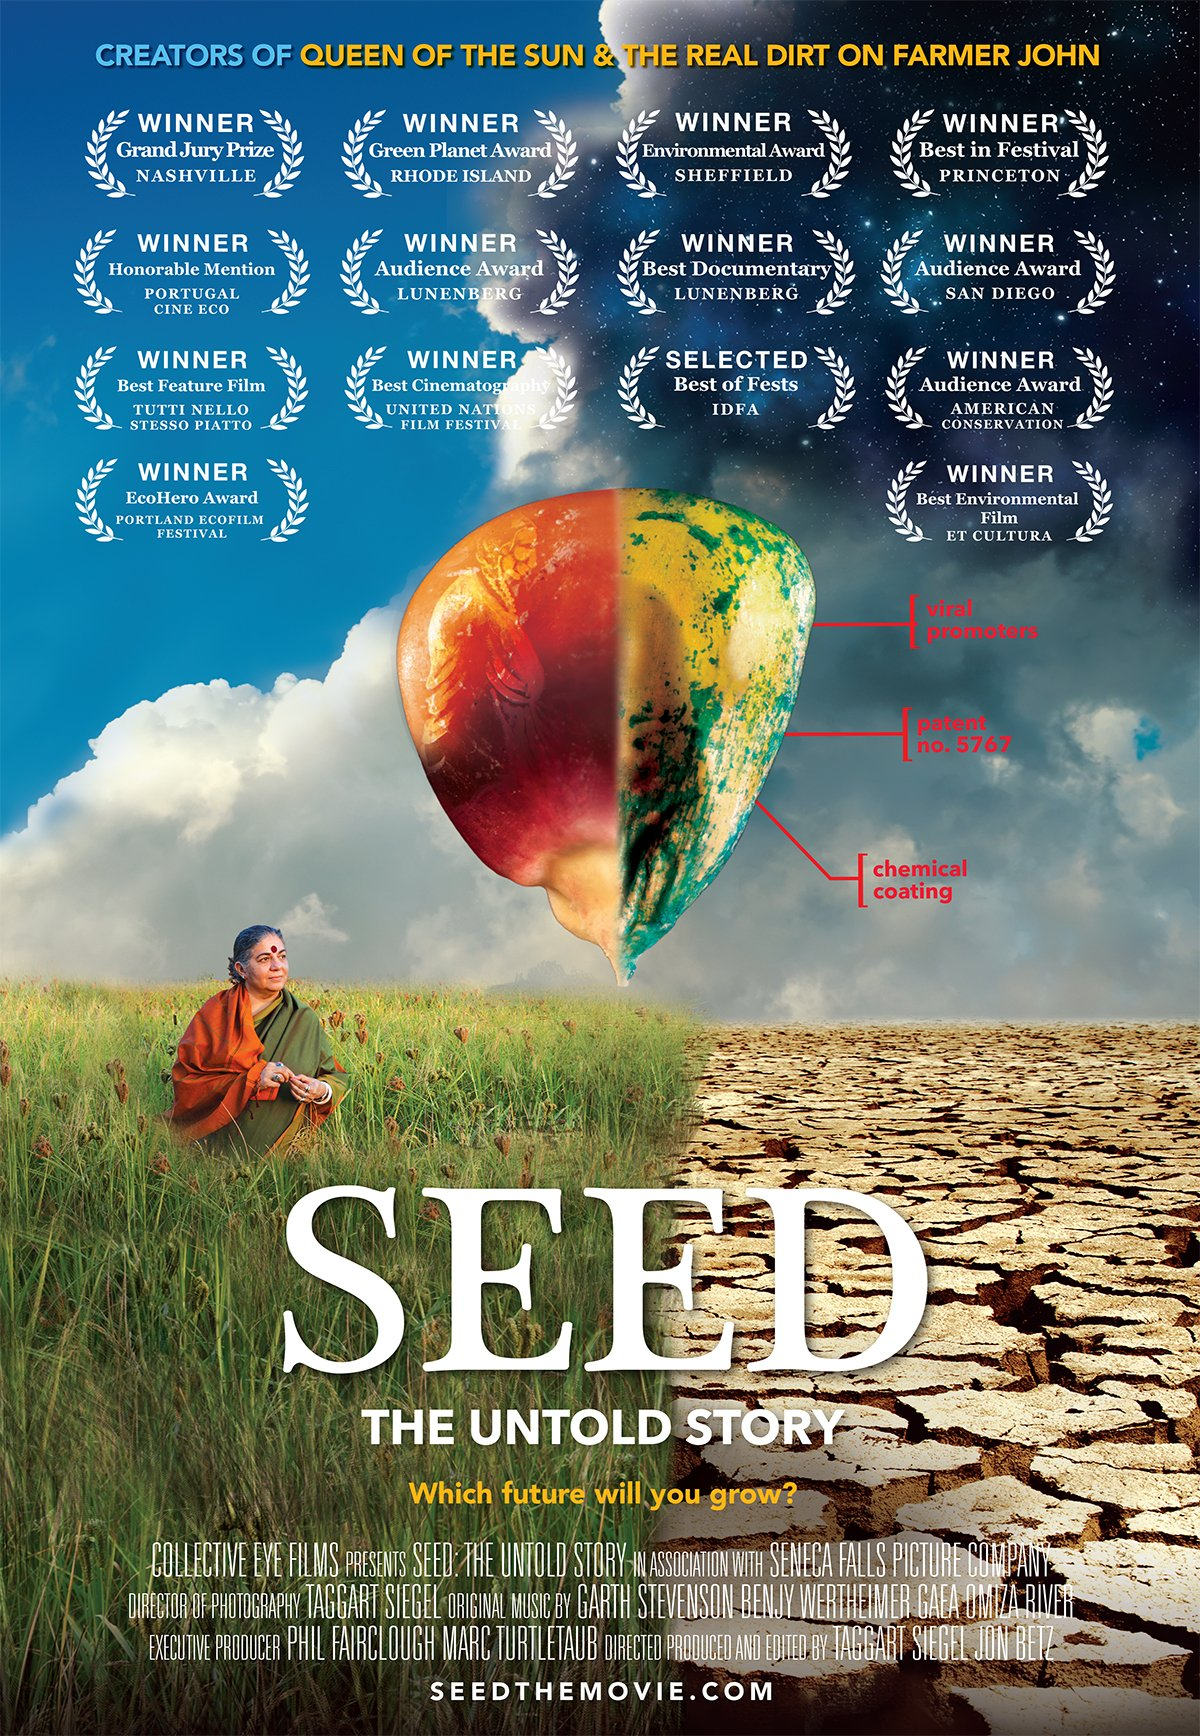 Film Nominee Seed: The Untold Story